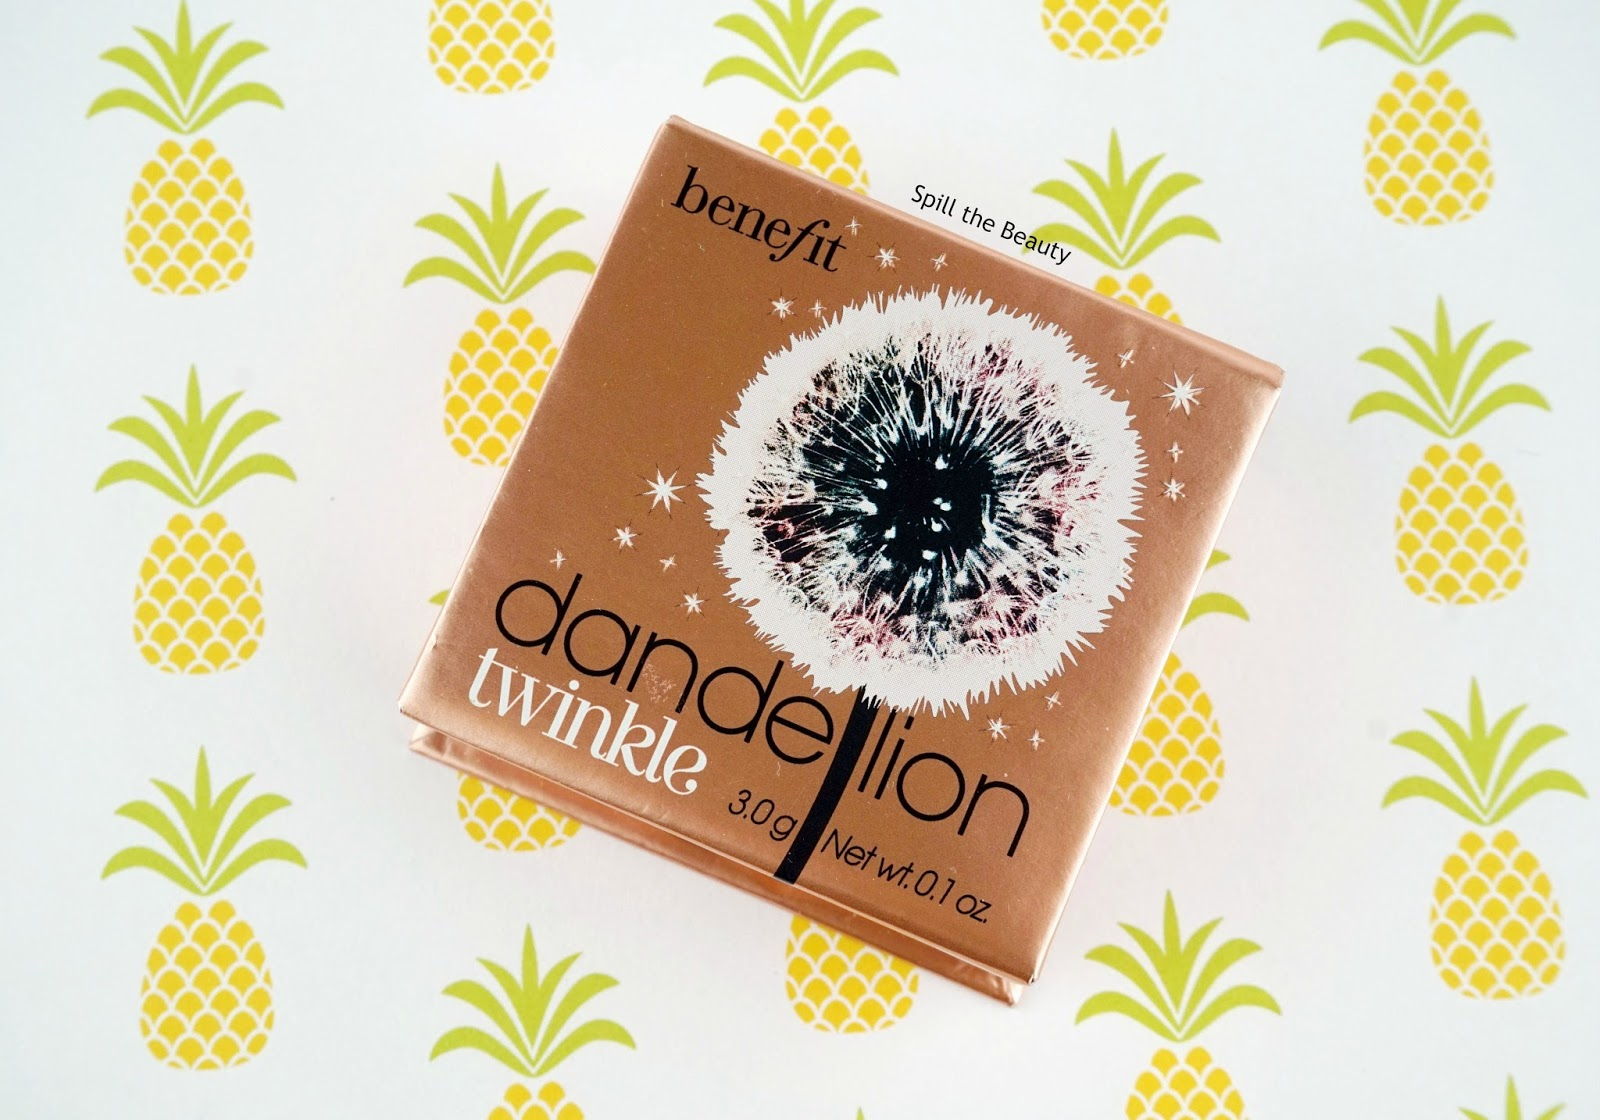 Benefit 'Dandelion Twinkle' Highlighter – Review, Swatches, and Look